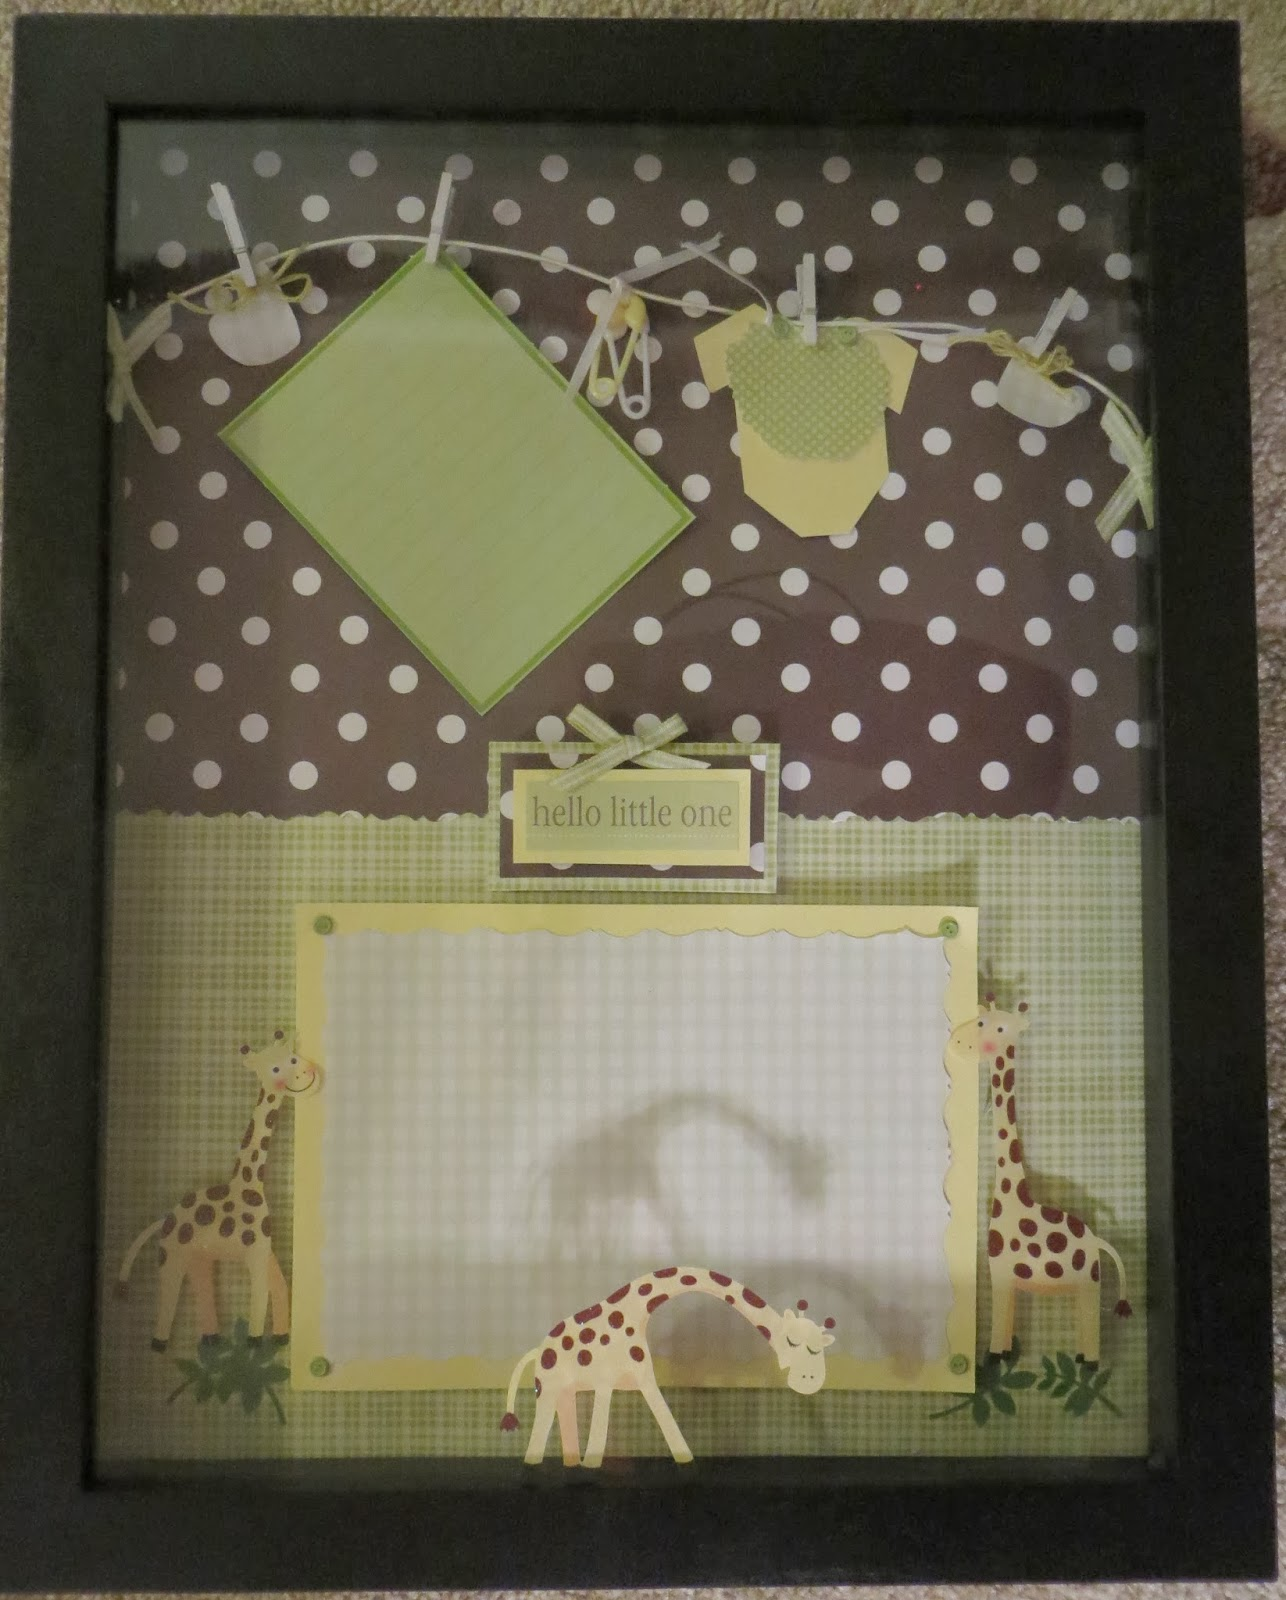 Baby Bedroom In A Box Special: Tiny Treasures: Baby Nursery Shadow Box